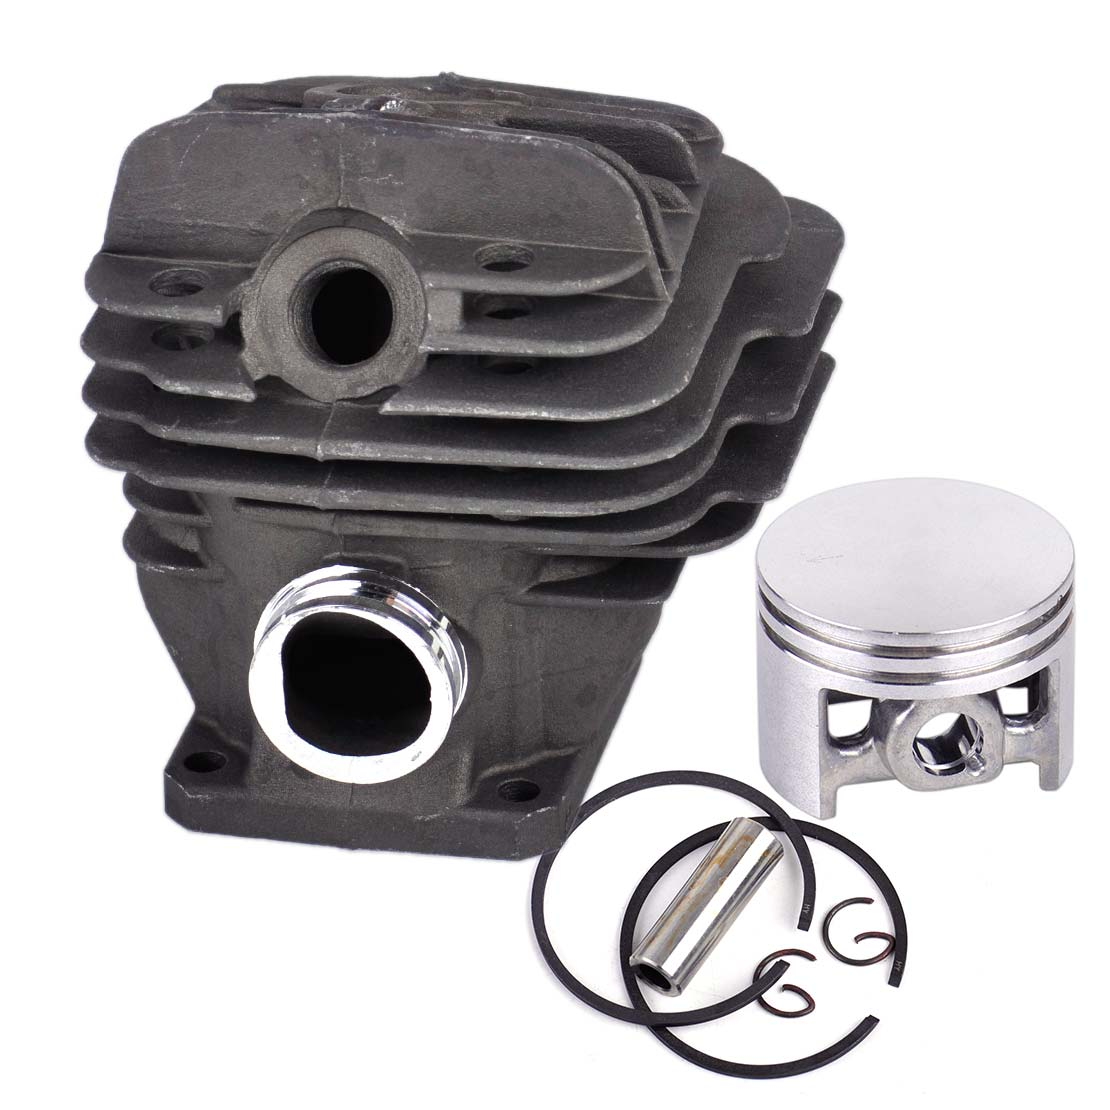 LETAOSK 44MM Cylinder Piston Ring Kit Fit for STIHL 026 MS260 Chainsaw 1121 020 1217Accessories раковина jika olymp deep by jika мини 50 см с отверстием слева 8 1561 3 000 105